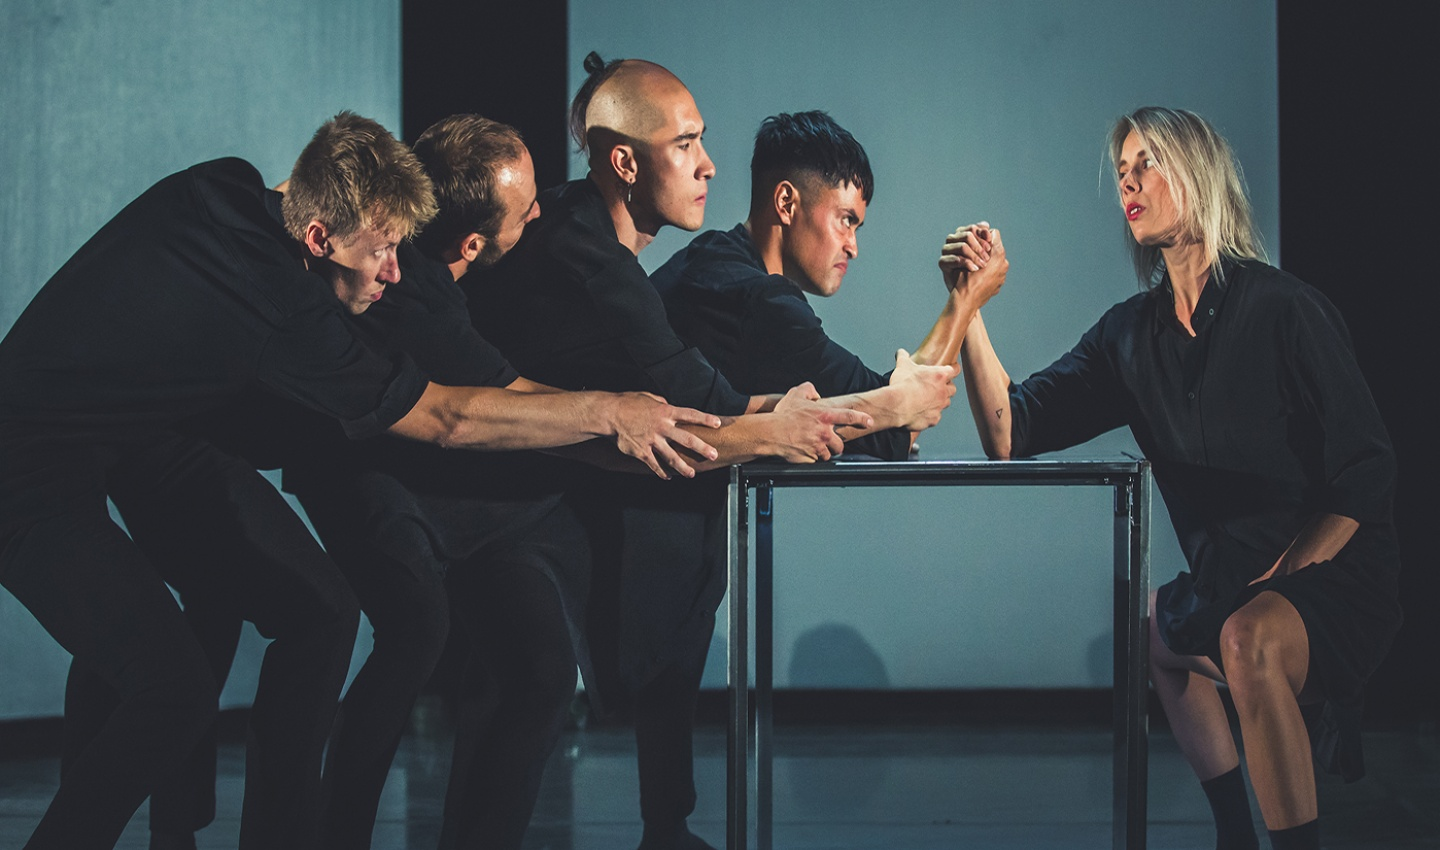 Maison des arts de Créteil - Uppercut Dance Theater<br>'Panic Day' & 'Differences'